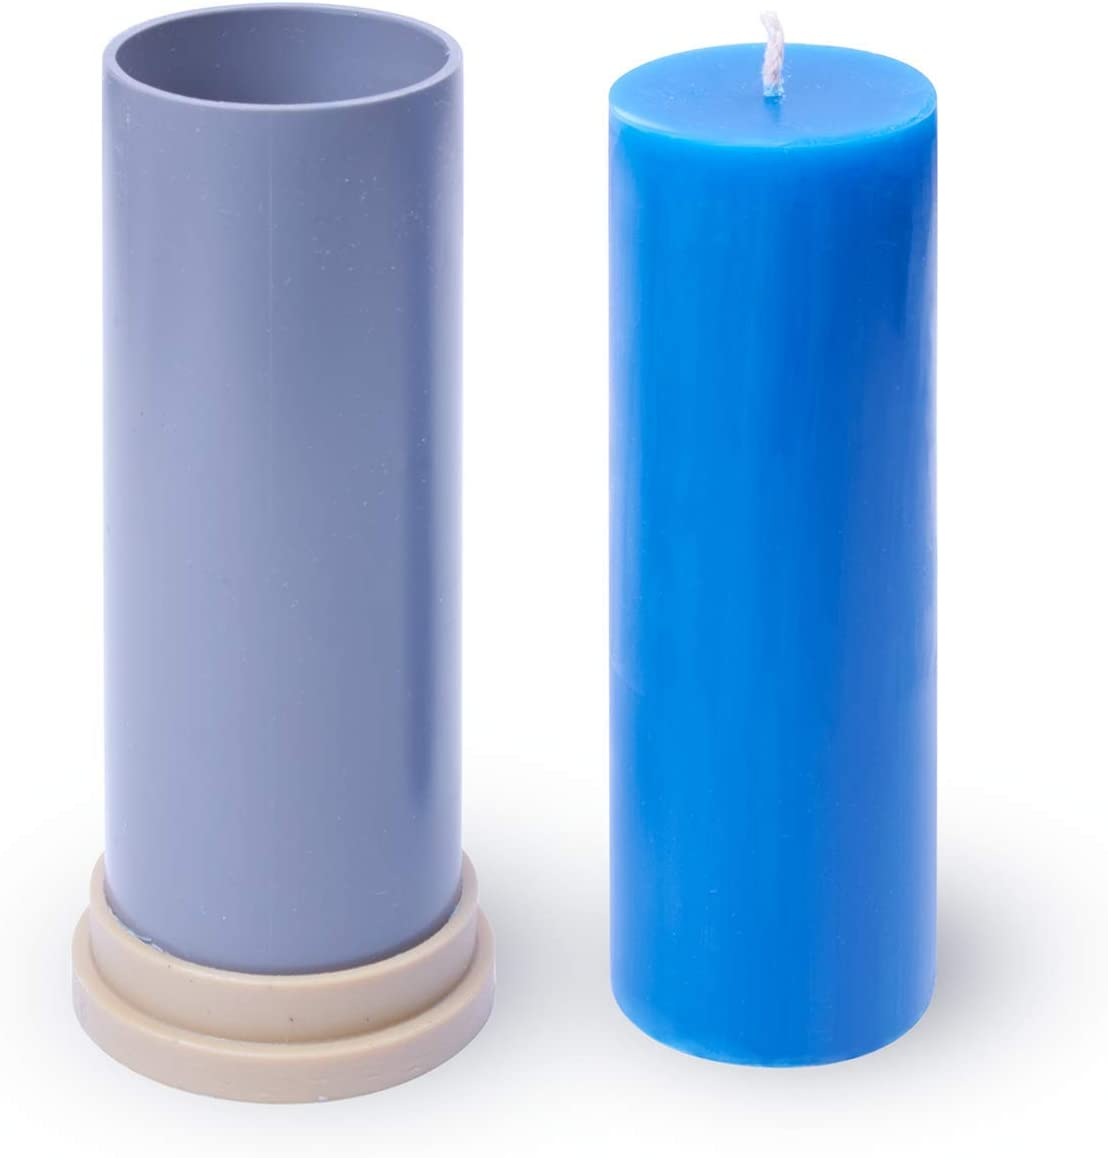 Cylinder Mold by Candle Shop